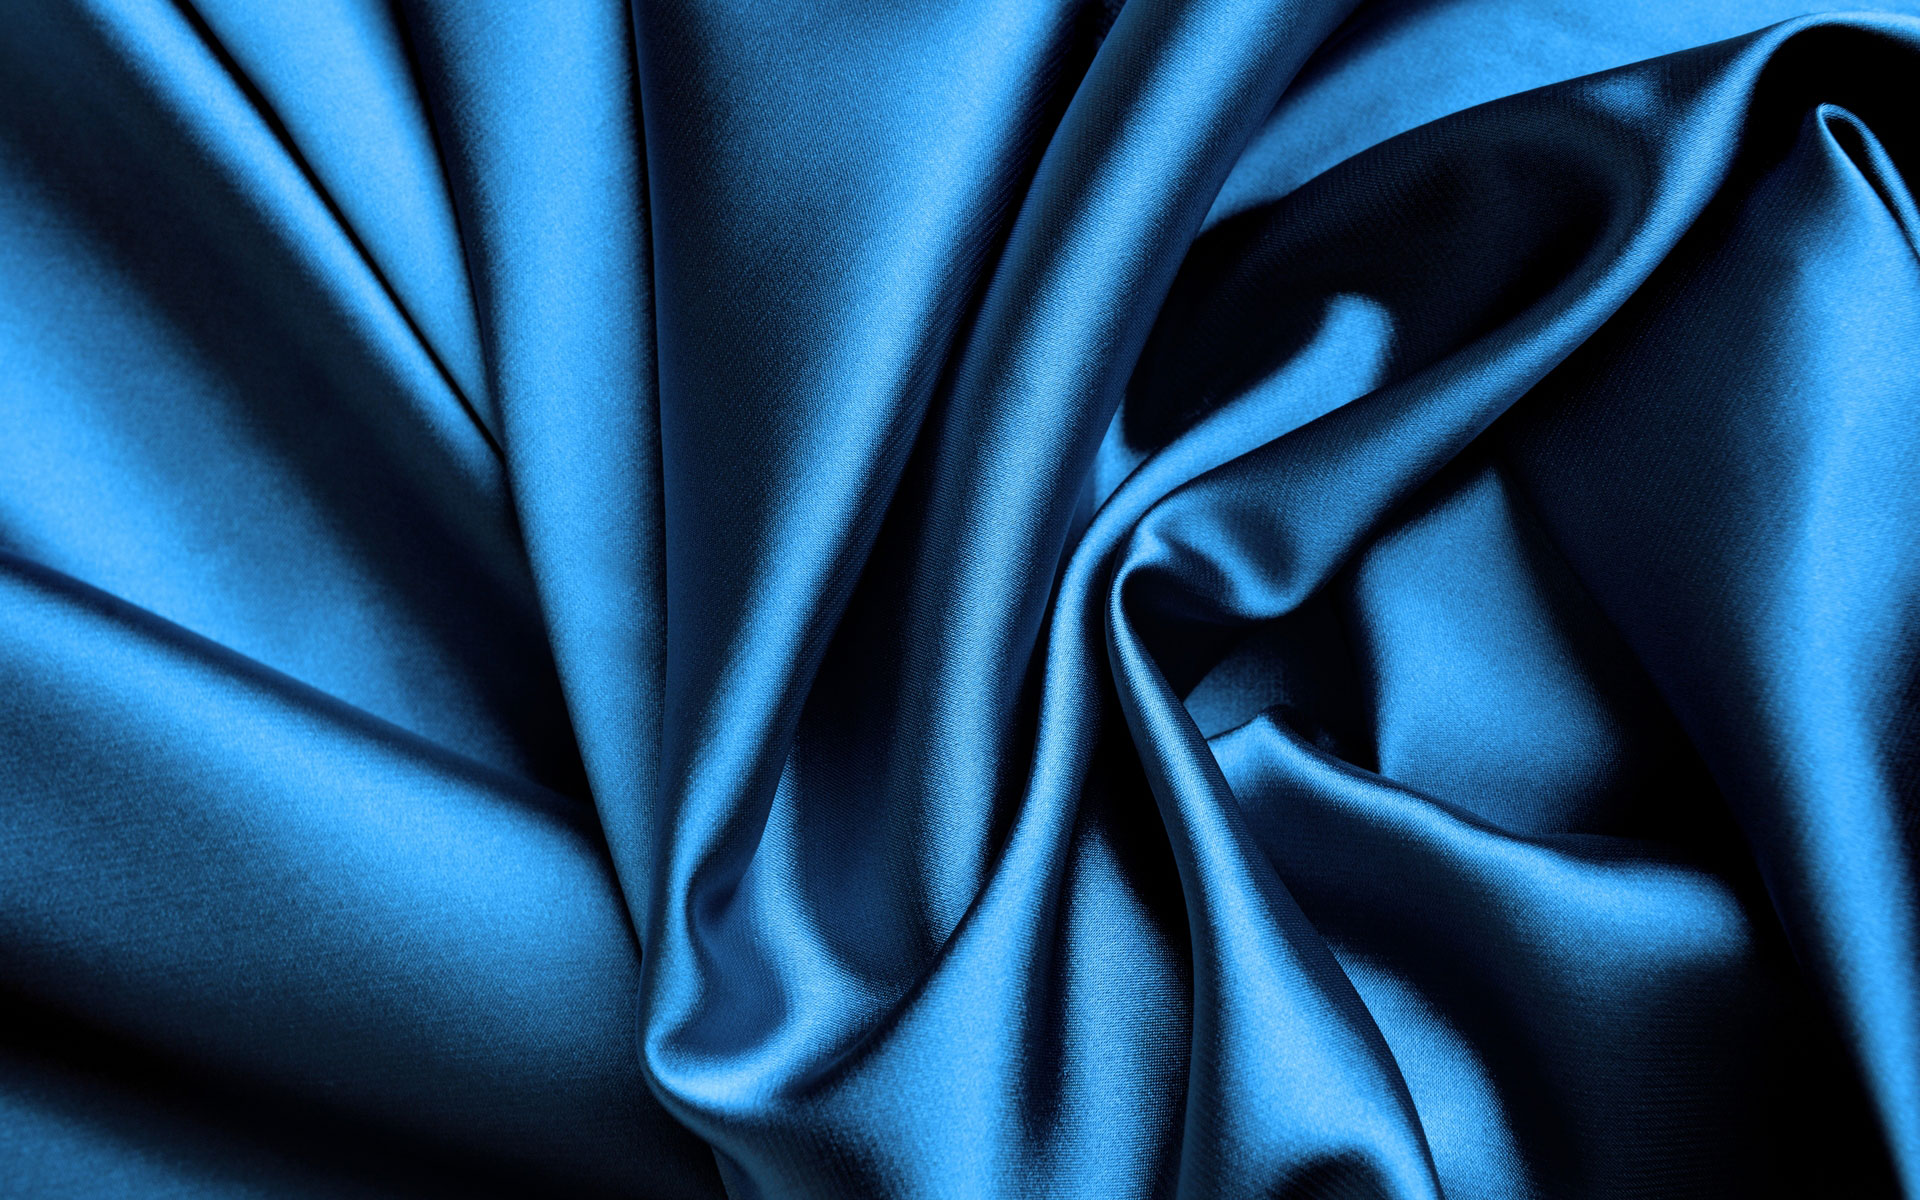 Blue Silk Wallpaper 26461 1920x1200 px ~ HDWallSource.com